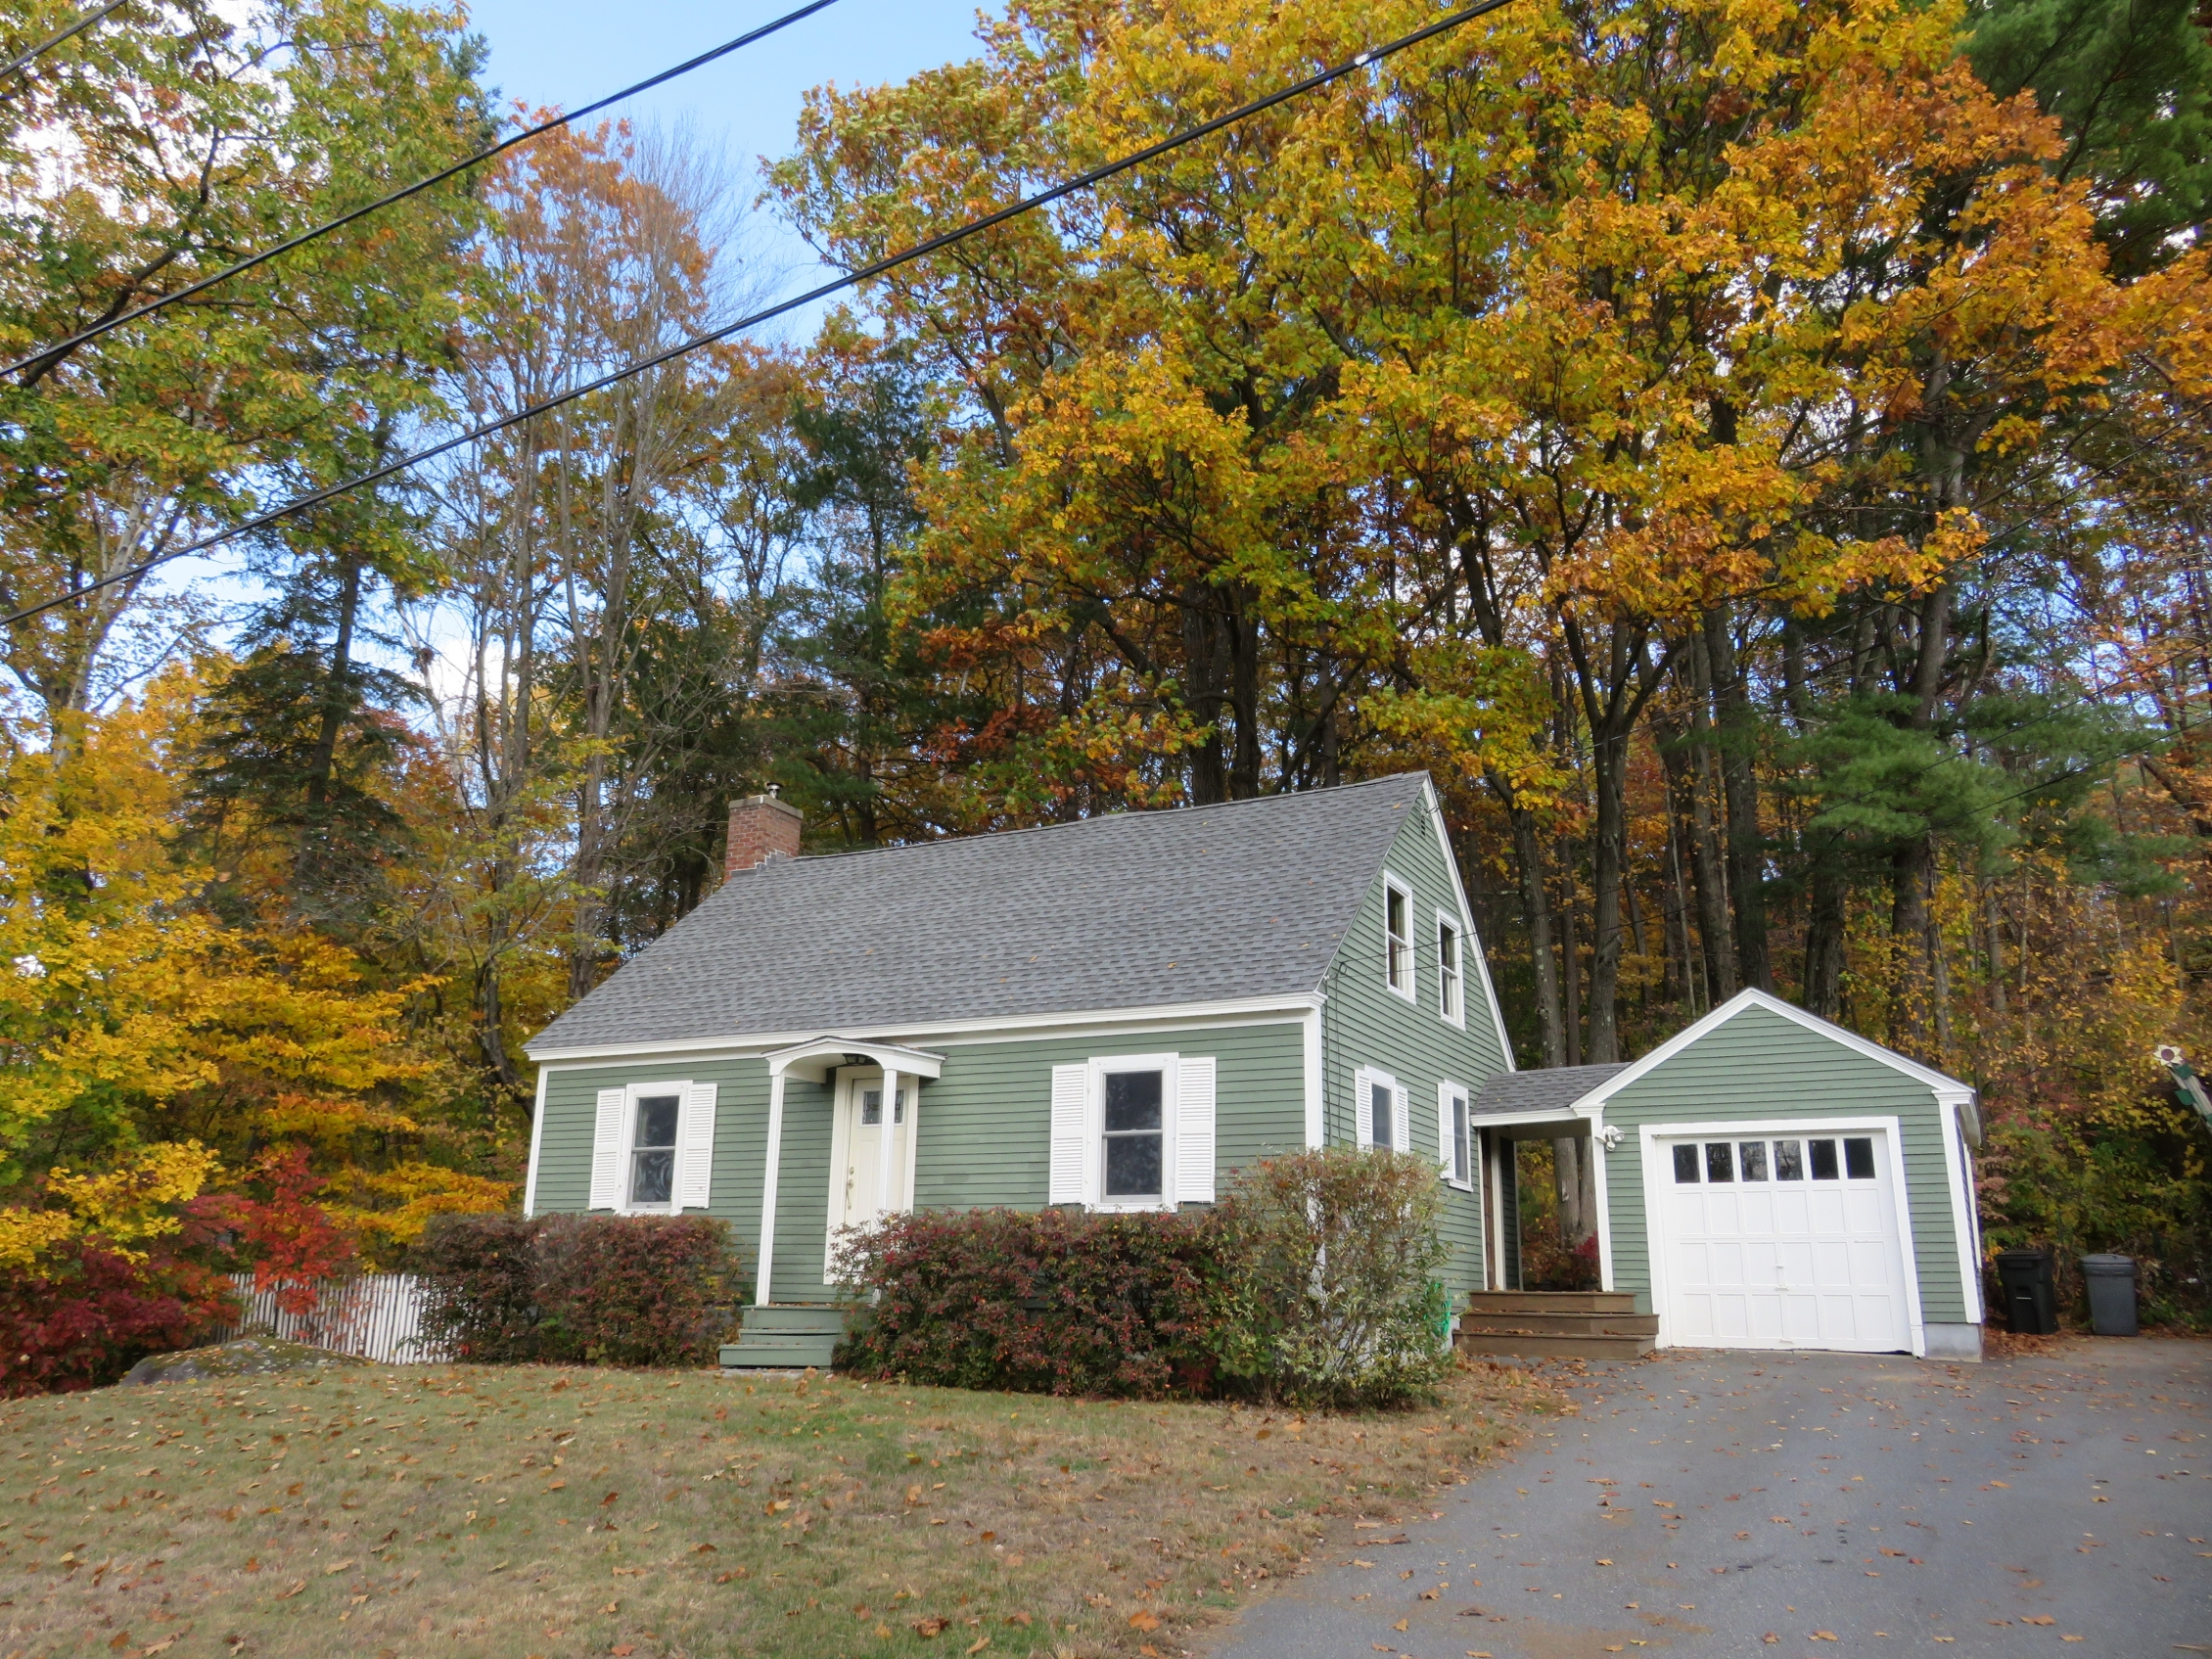 77 Forest Ave, Lebanon, NH 03766